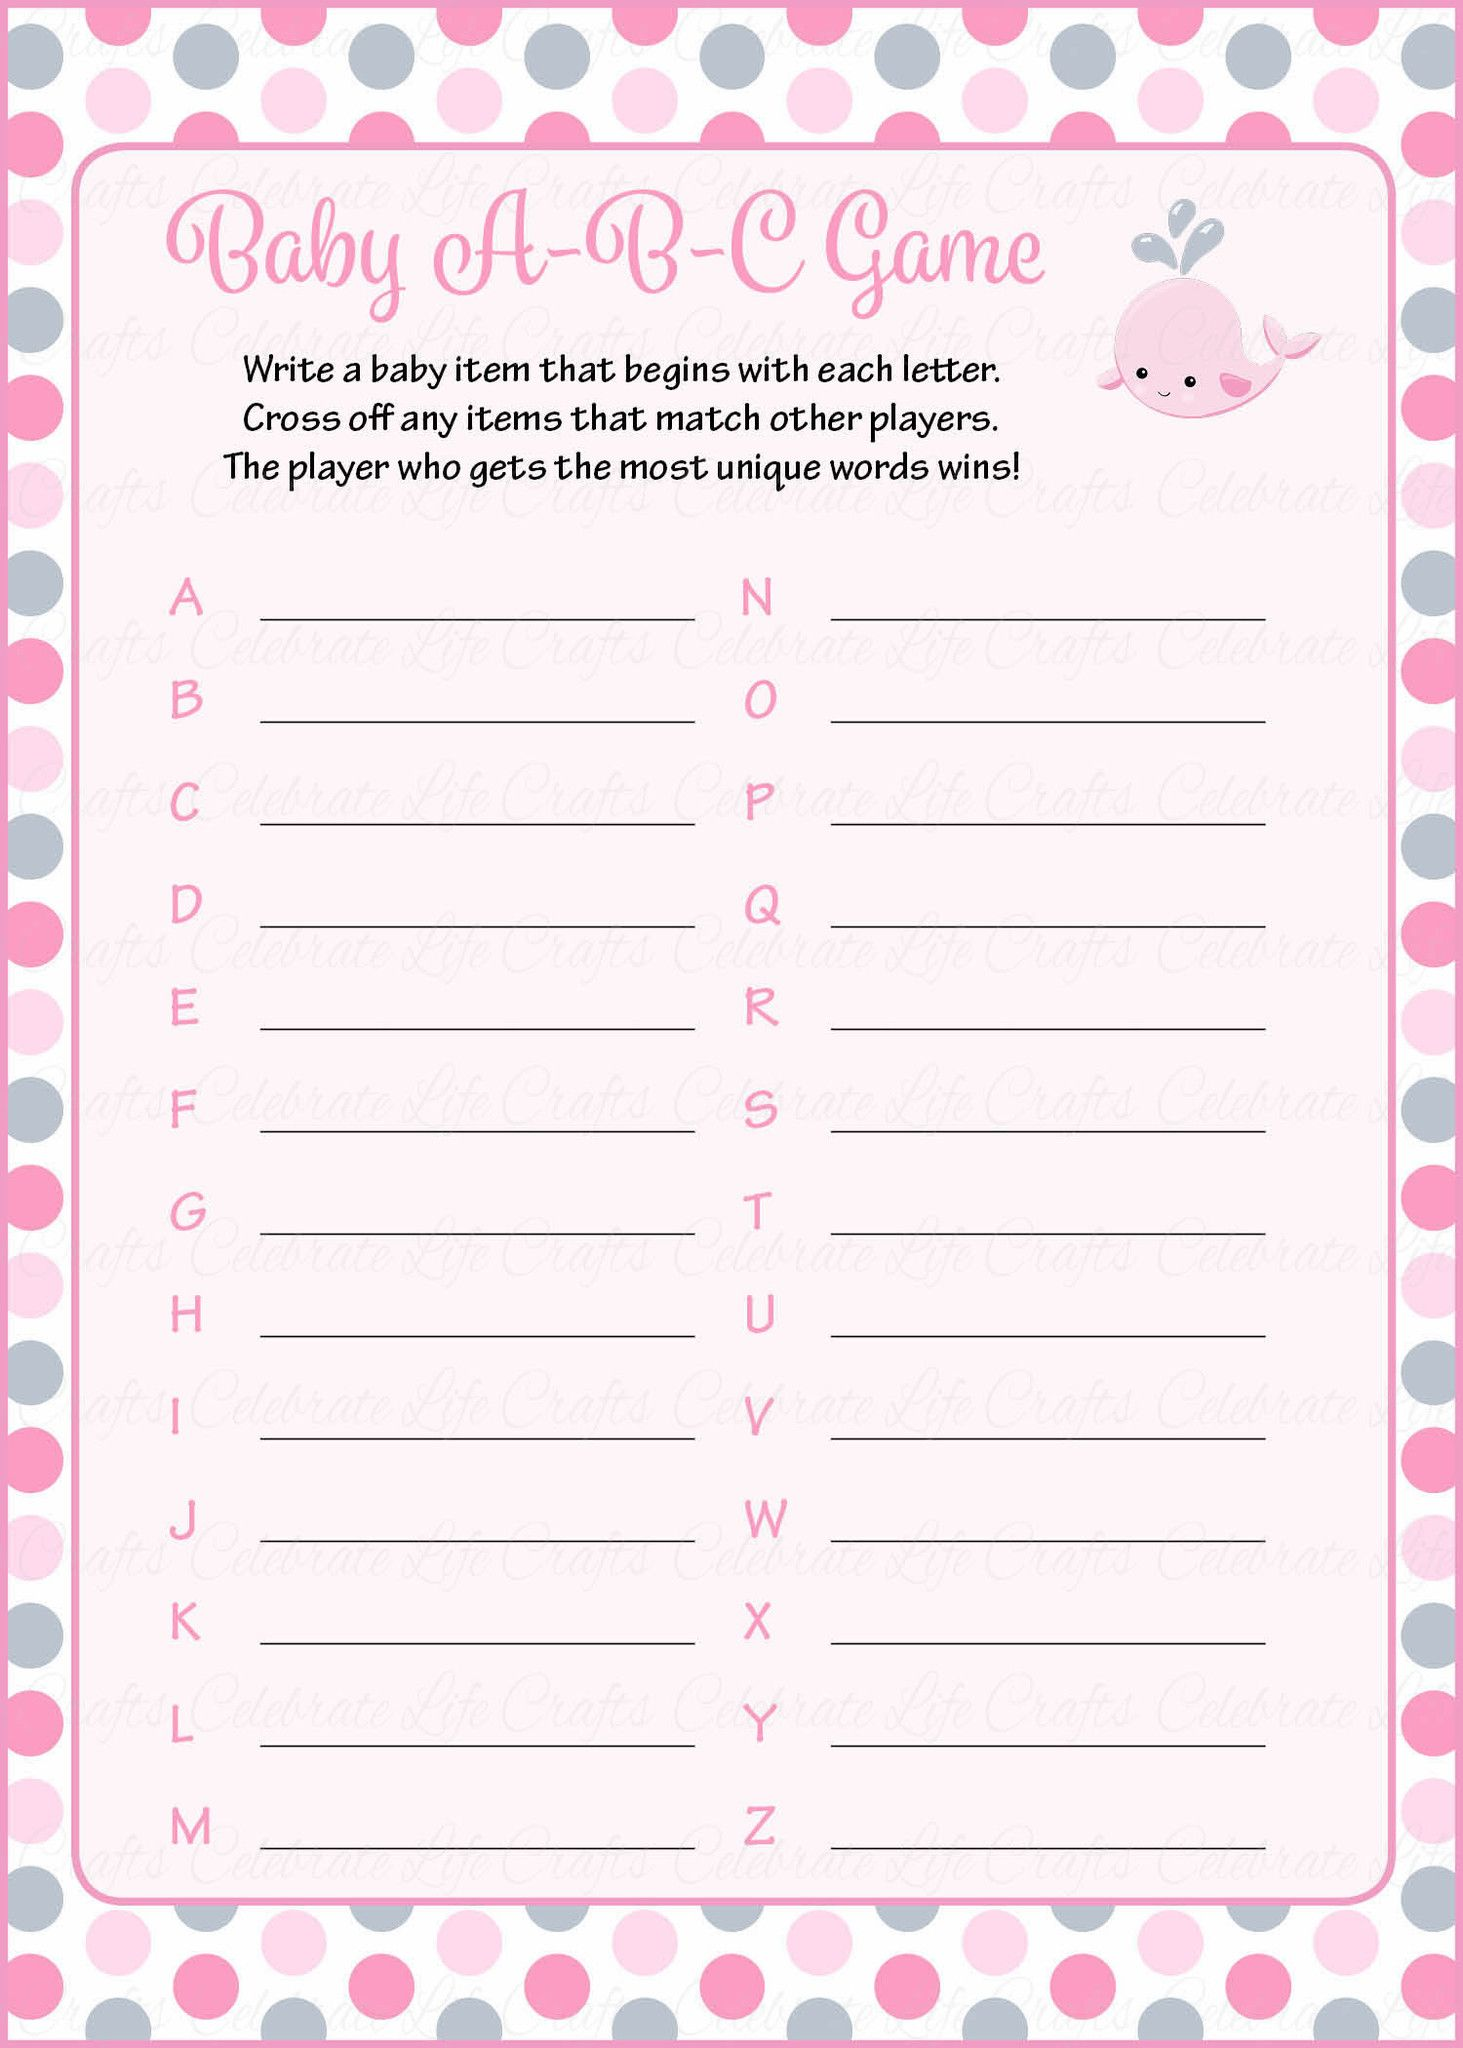 Baby Abc Game  Printable Download  Pink Gray Whale